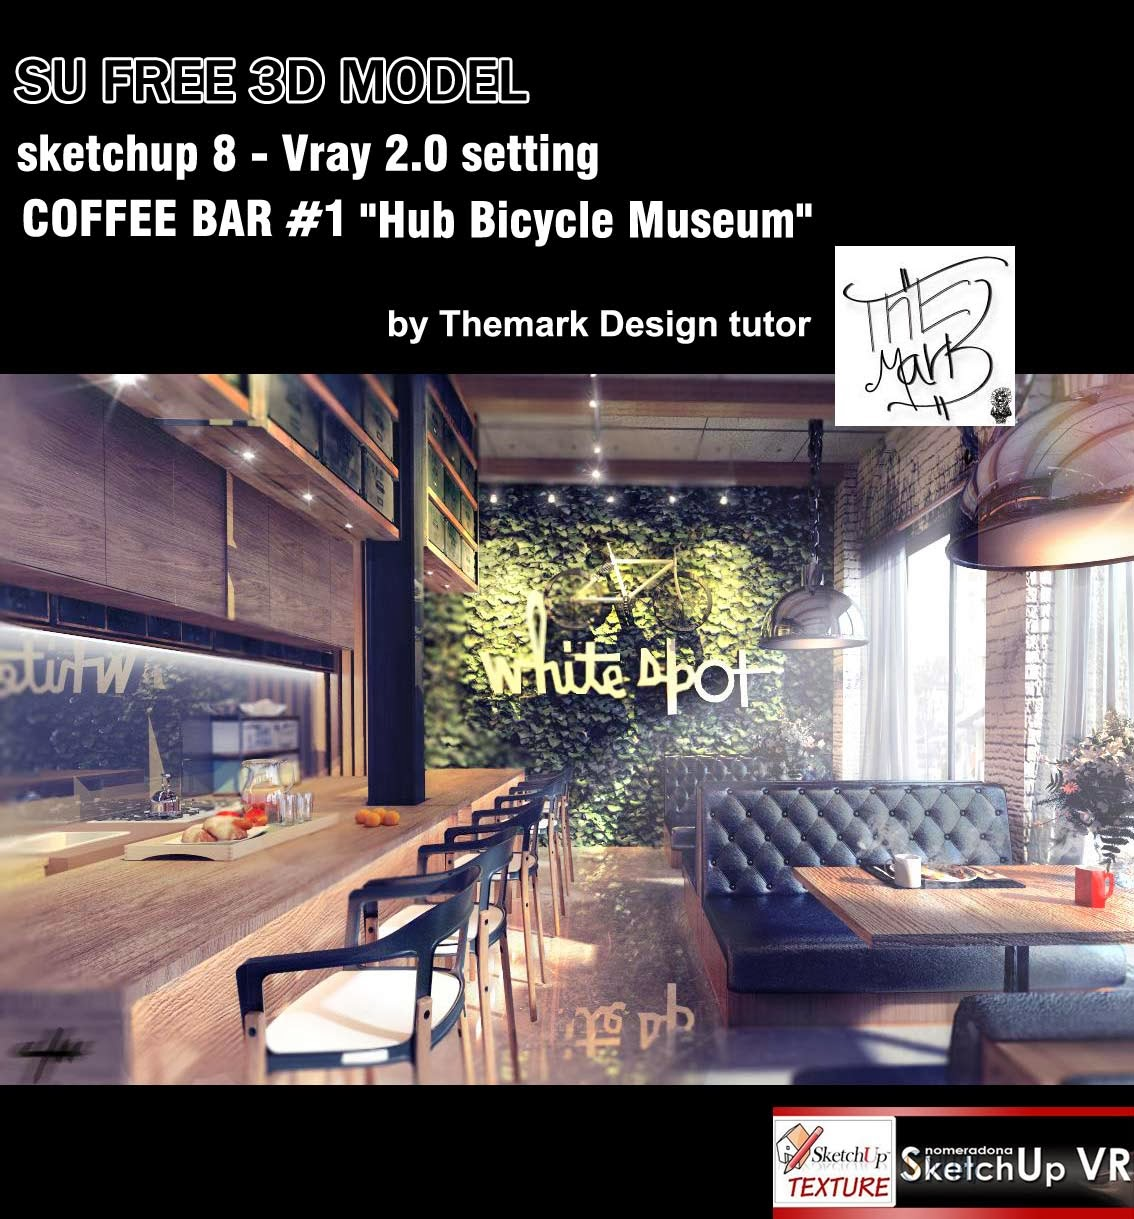 SKETCHUP TEXTURE FREE SKETCHUP 3D MODEL COFFEE BAR 1